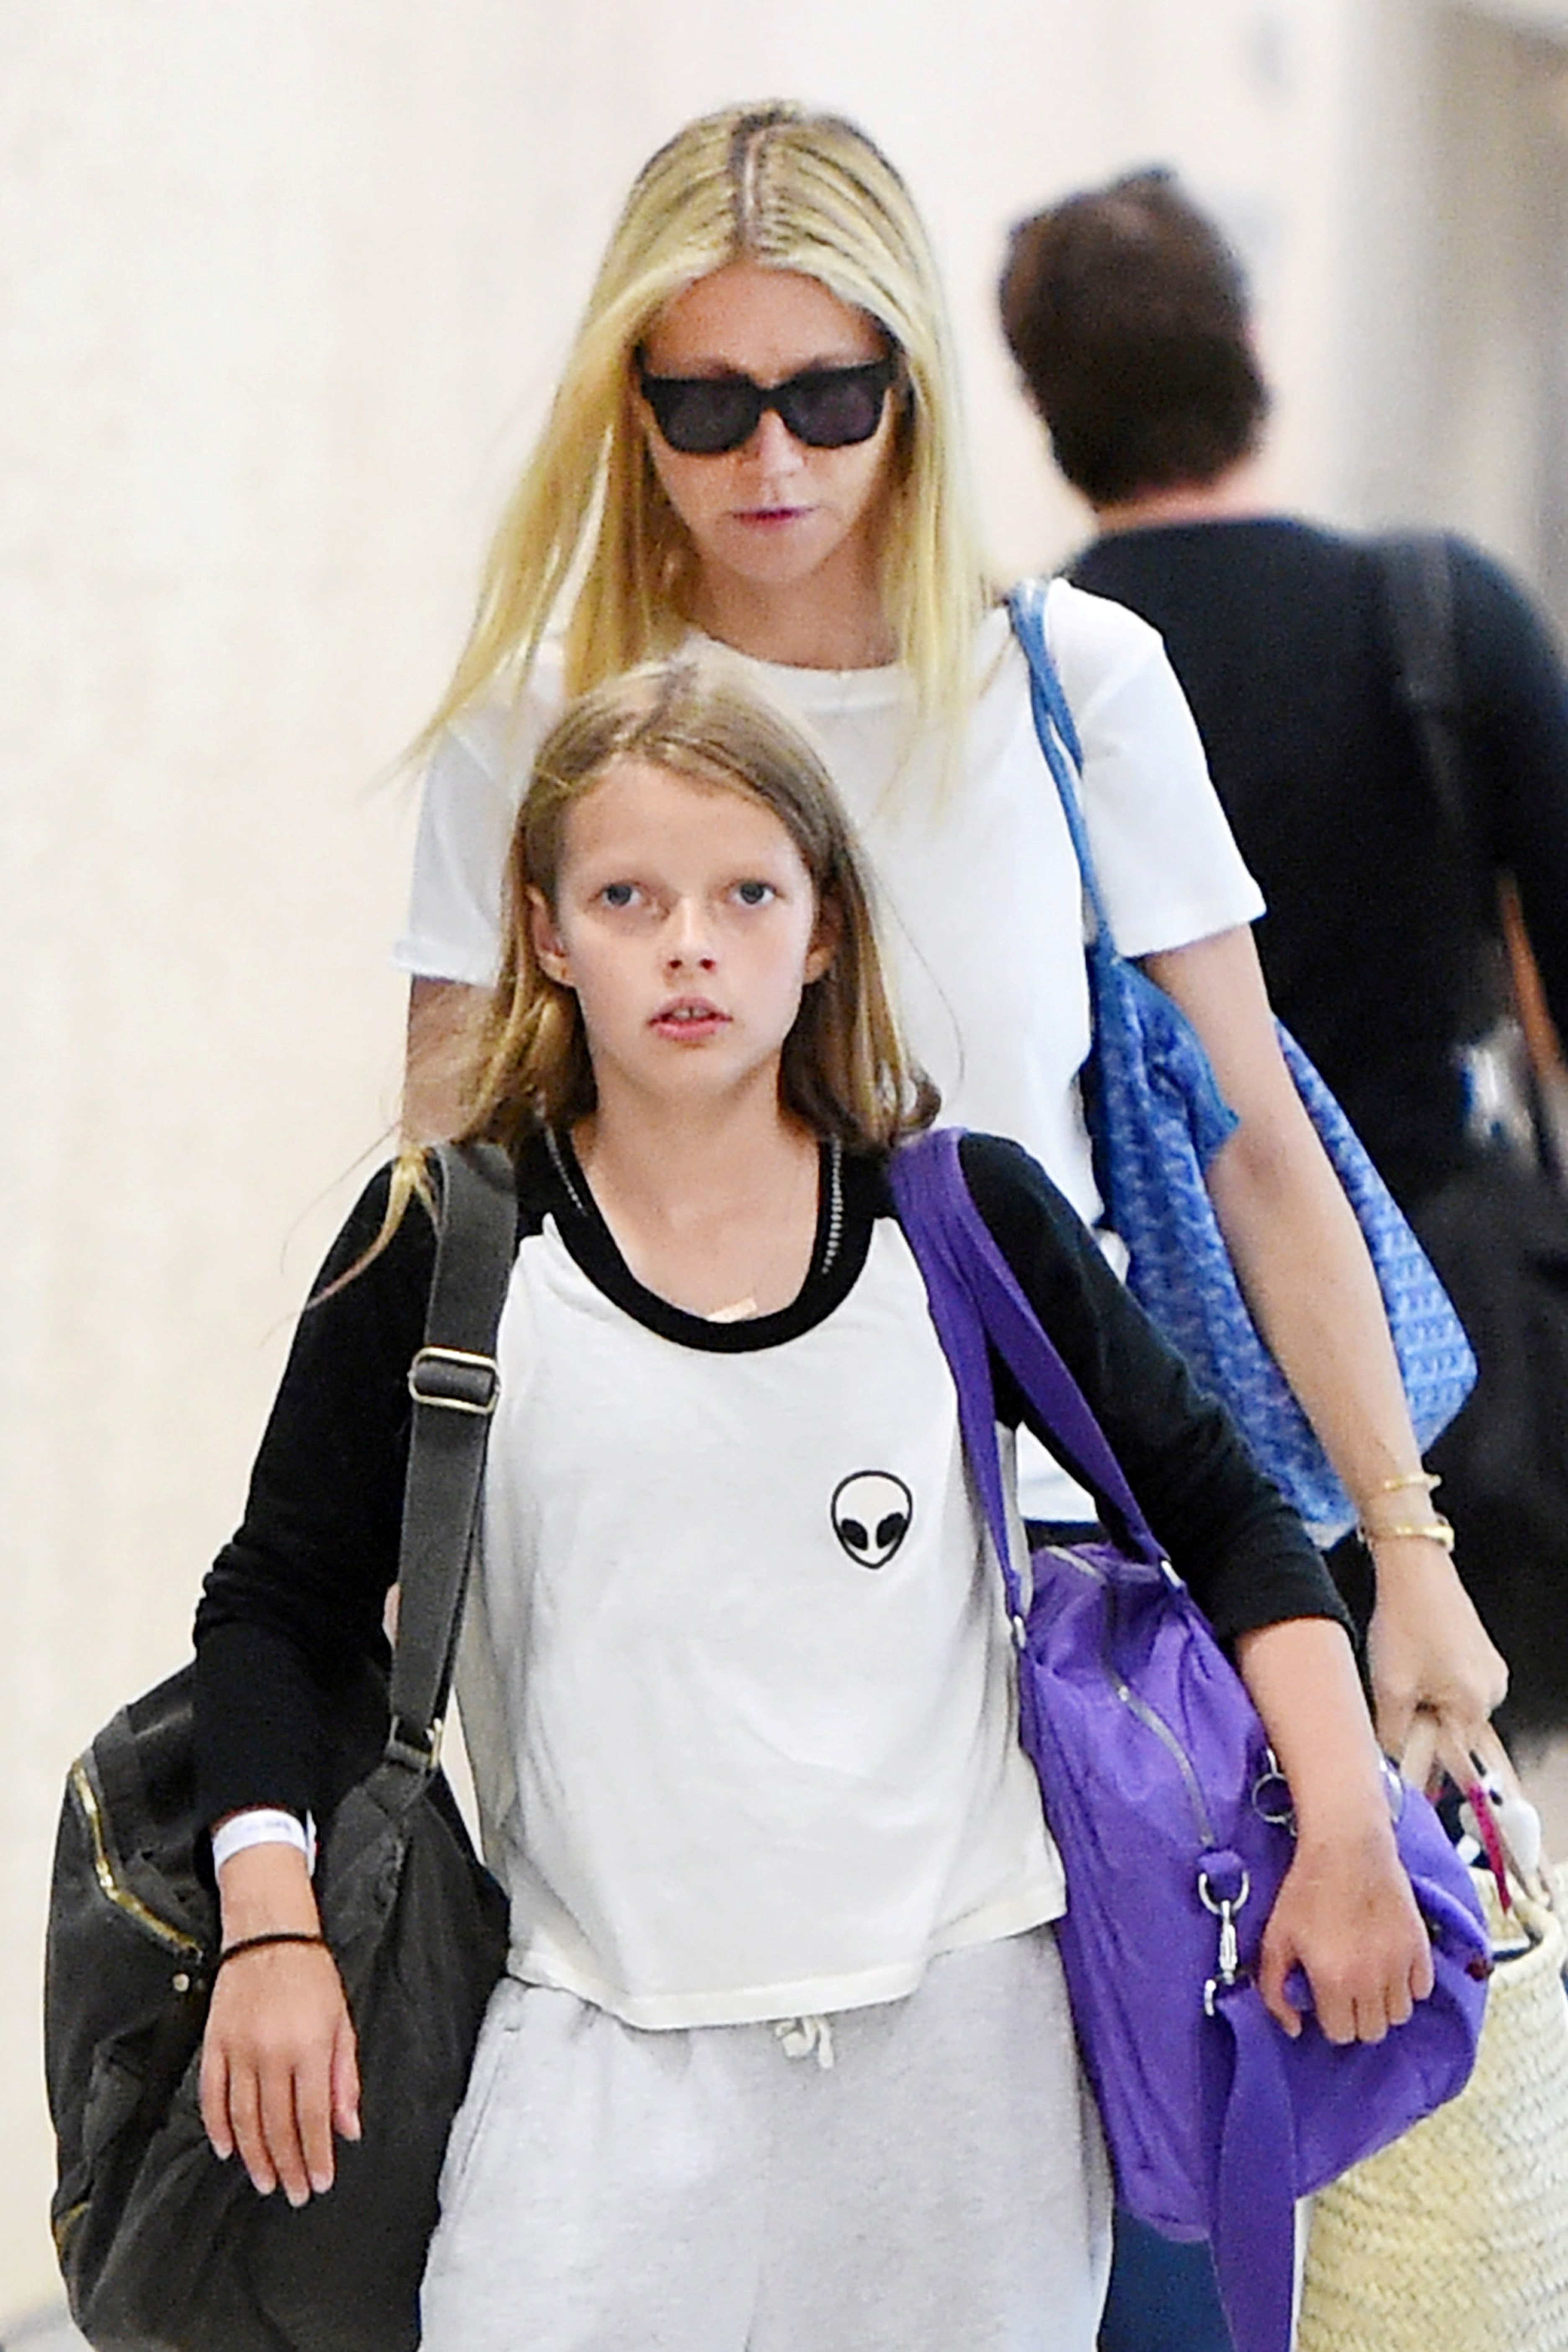 Actress Gwyneth Paltrow arrives with her kids, Apple Martin and Moses Martin at JFK Airport in New York City on June 29, 2015.